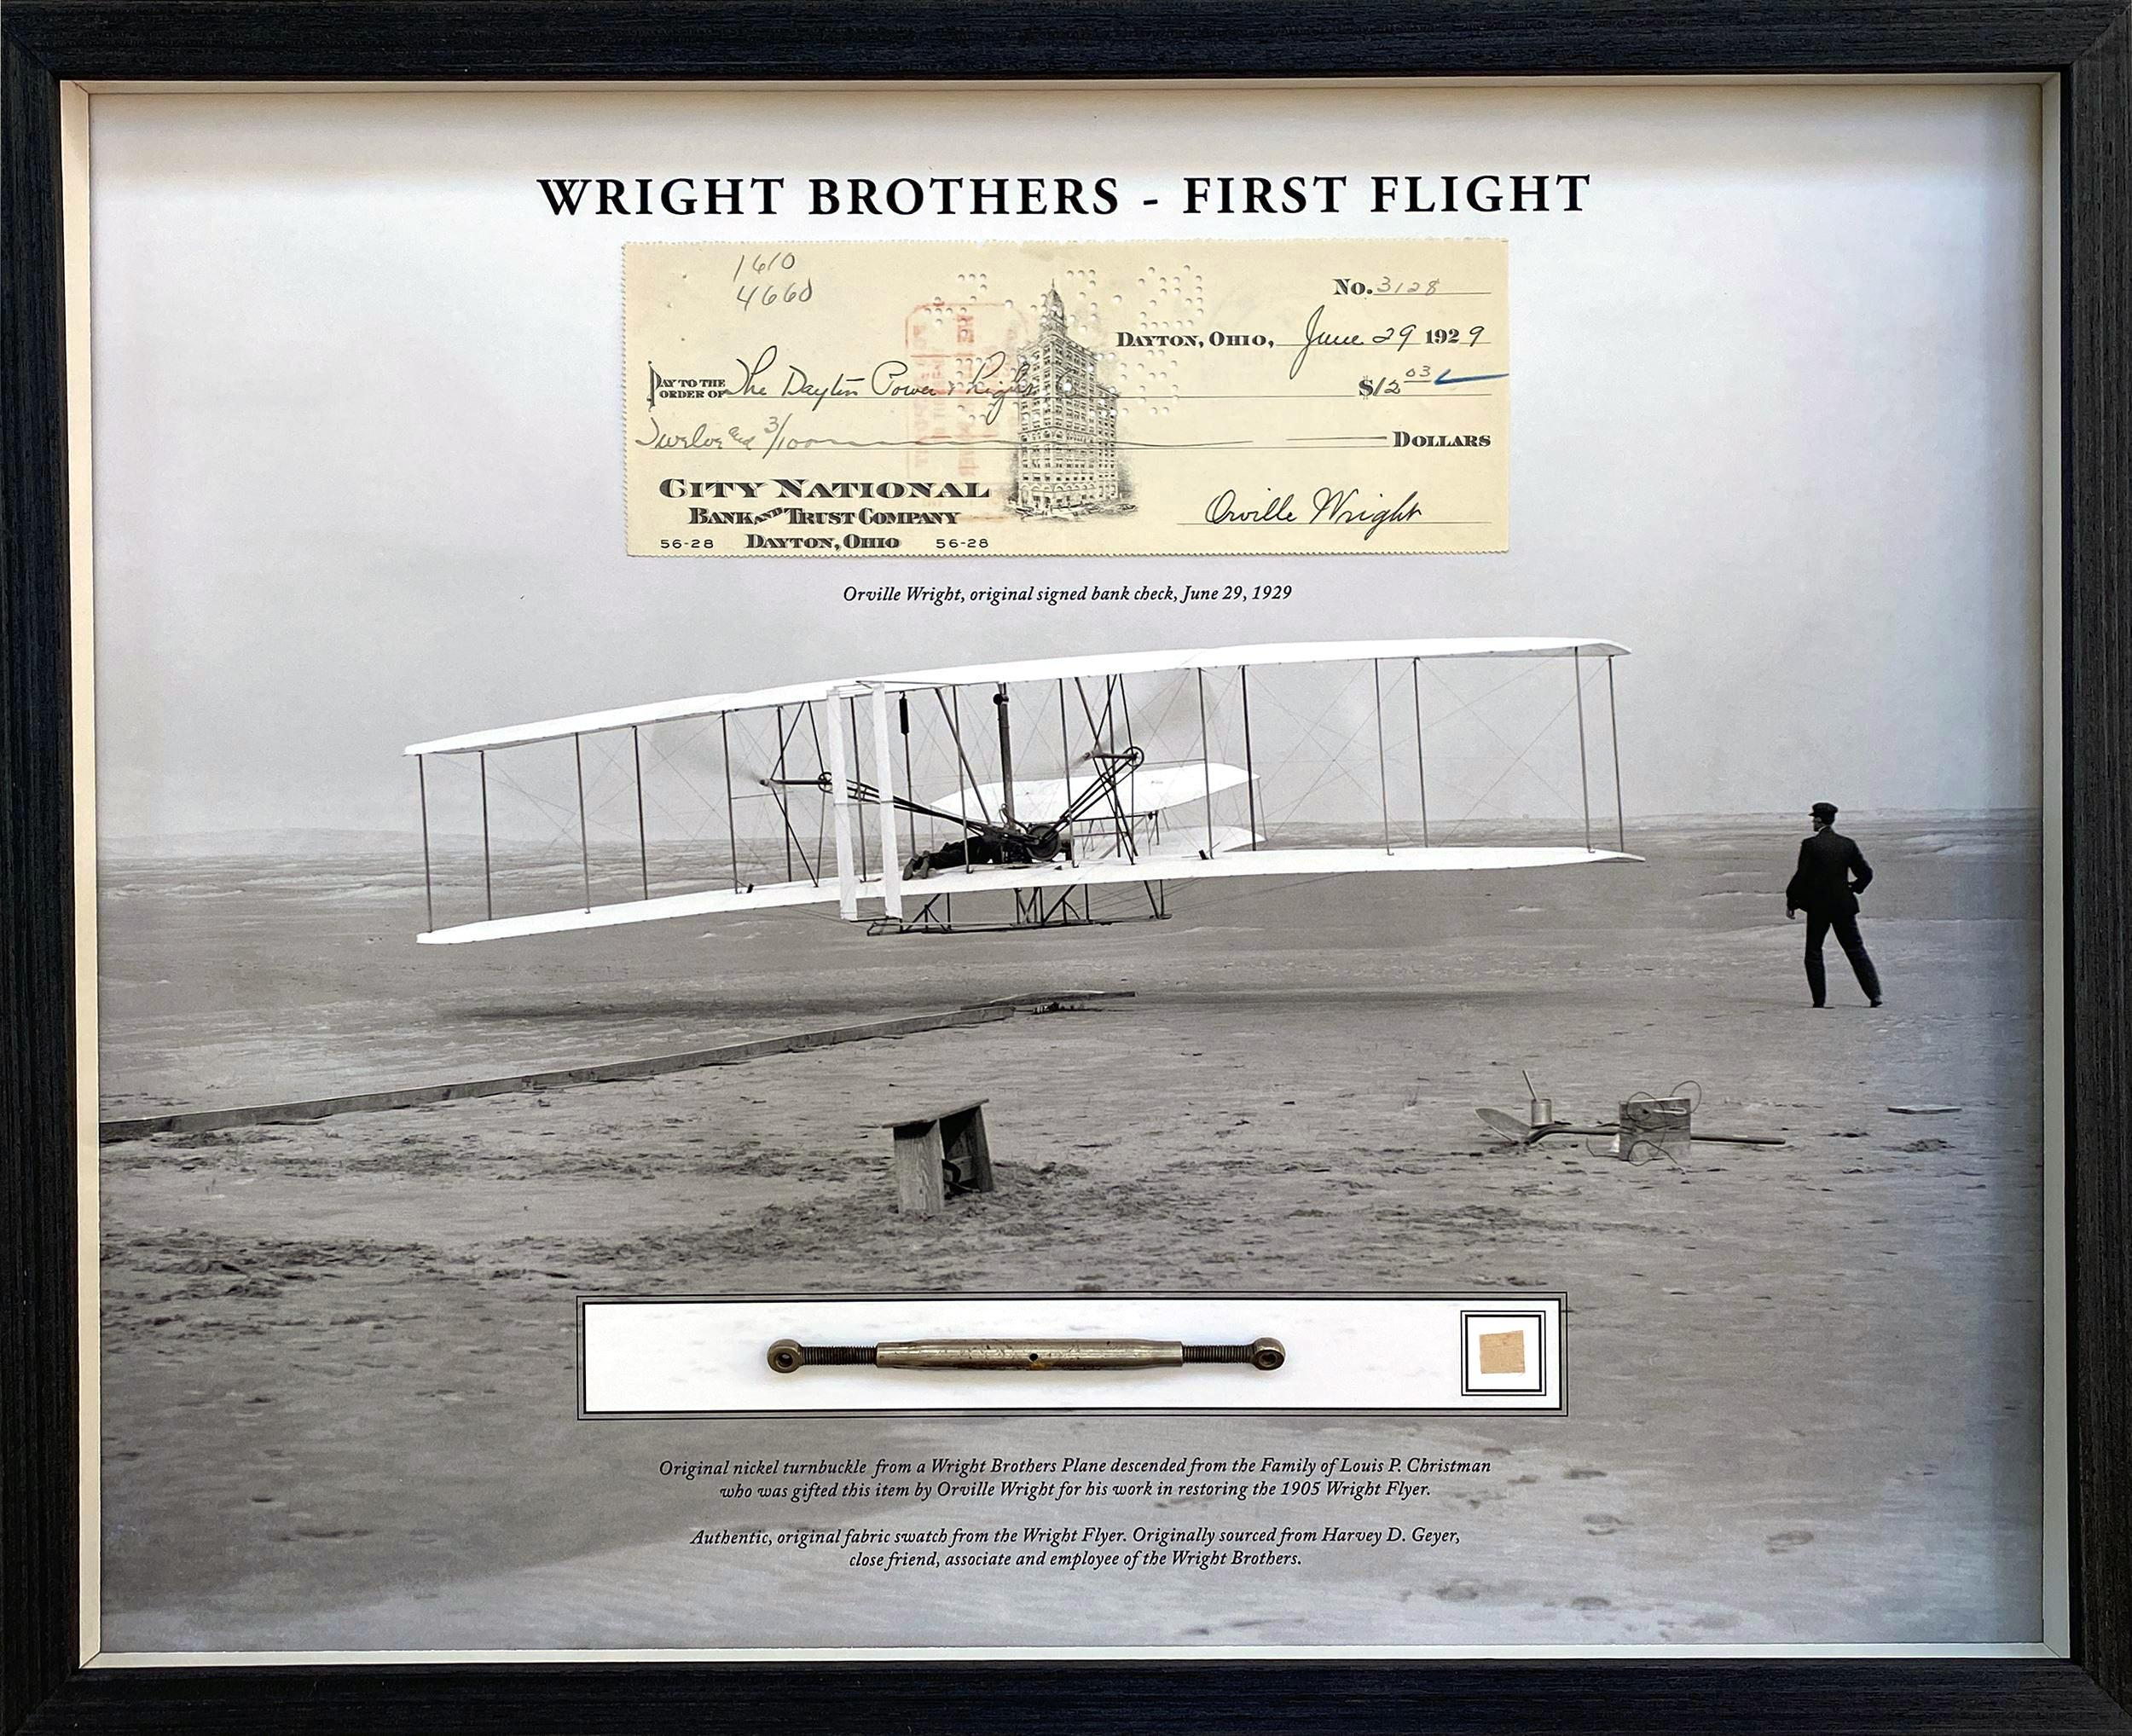 Incredible Wright Brothers Display Incorporating Bold Orville Autograph & Original Kitty Hawk & Other Relics